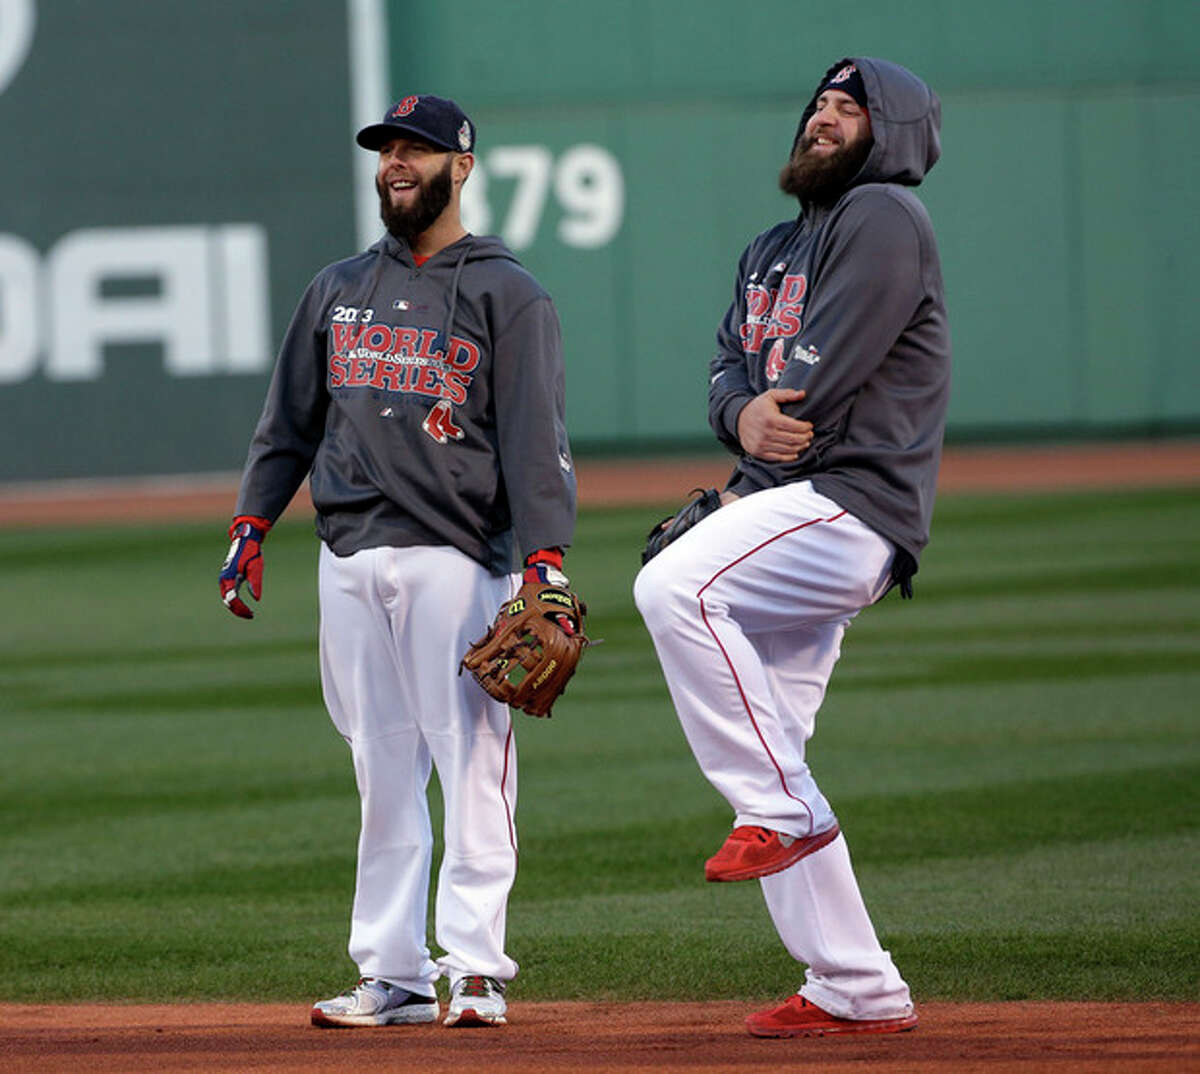 Boston Red Sox's Mike Napoli, right, and Dustin Pedroia have some fun during batting practice before Game 2 of baseball's World Series against the St. Louis Cardinals Thursday, Oct. 24, 2013, in Boston. (AP Photo/David J. Phillip)